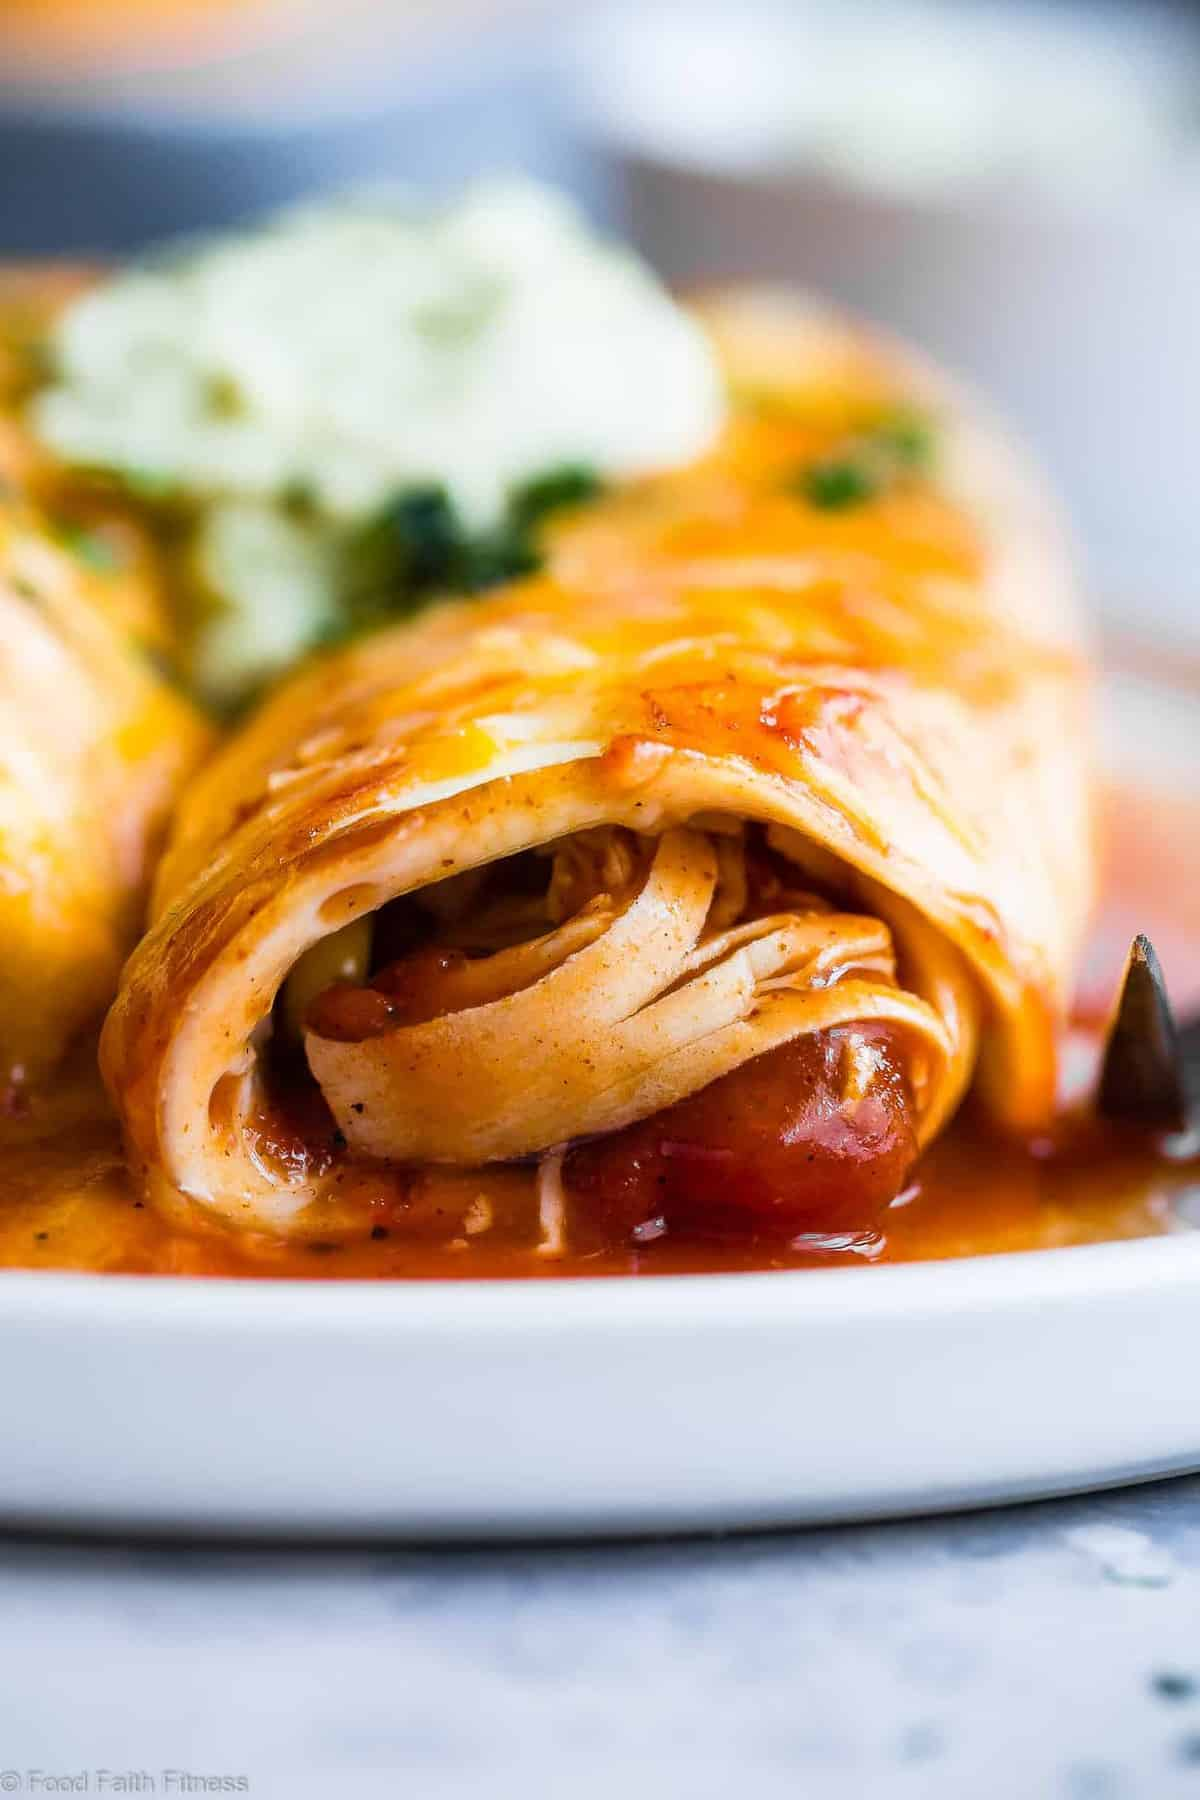 Healthy Low Carb Chicken Enchiladas - This gluten free Healthy Low Carb Chicken Enchilada Recipe uses a secret ingredient to make it low carb, protein PACKED and under 500 calories for a HUGE serving! These do NOT taste healthy and even picky eaters love them! | #Foodfaithfitness | #Lowcarb #Glutenfree #Healthy #Grainfree #Enchiladas